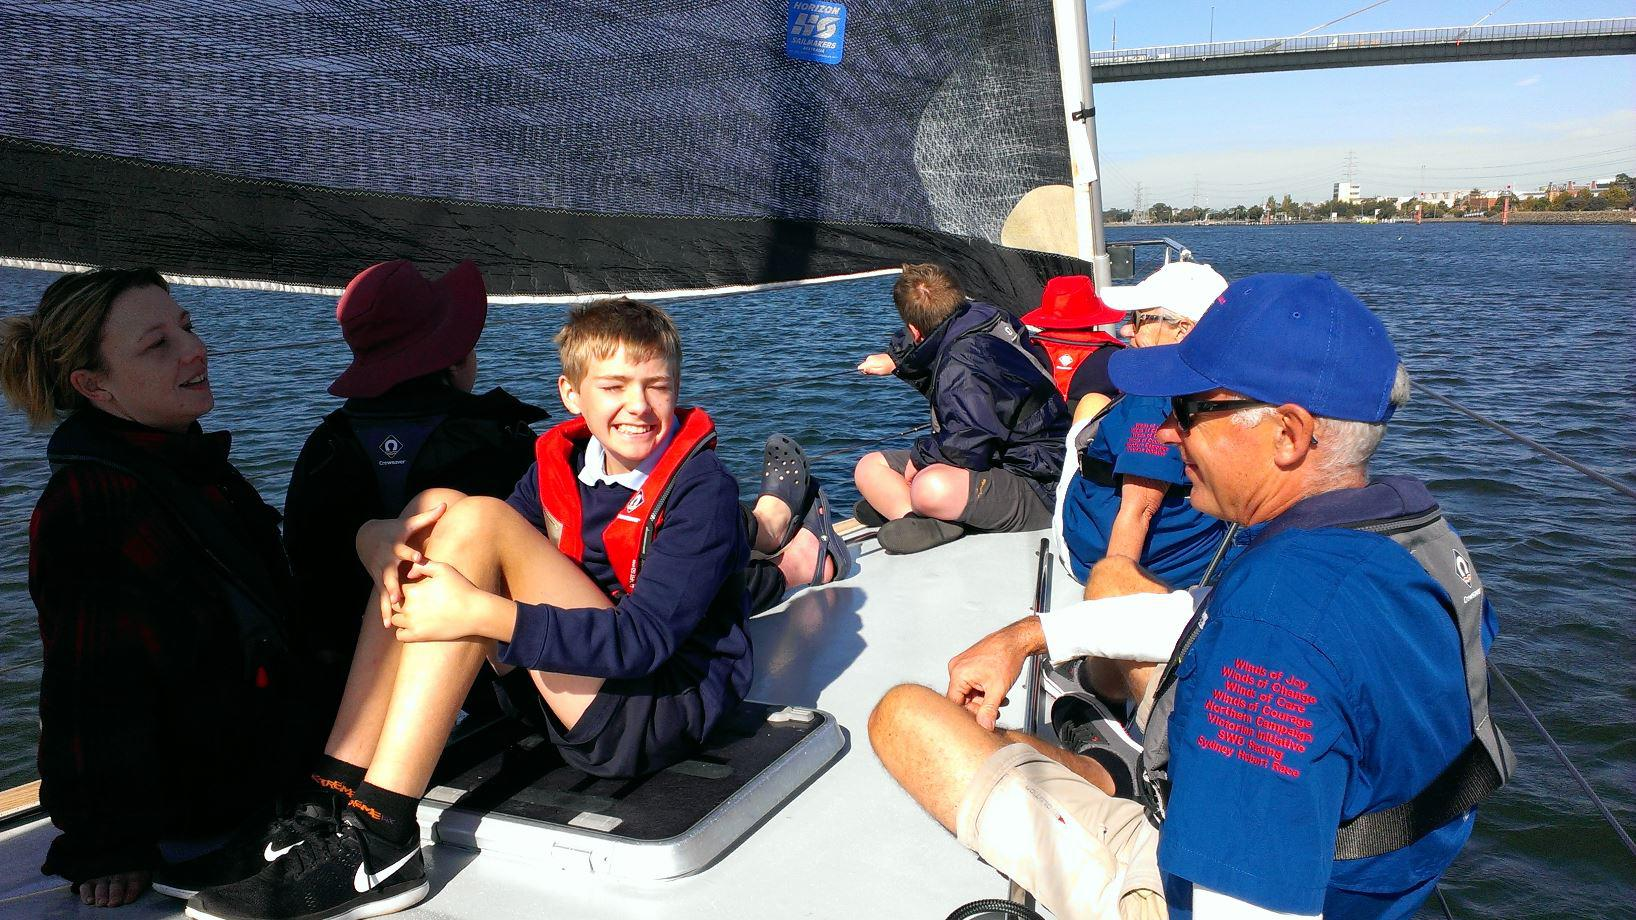 Ninety Seven at Docklands Melbourne for Sailors with disABILITIES